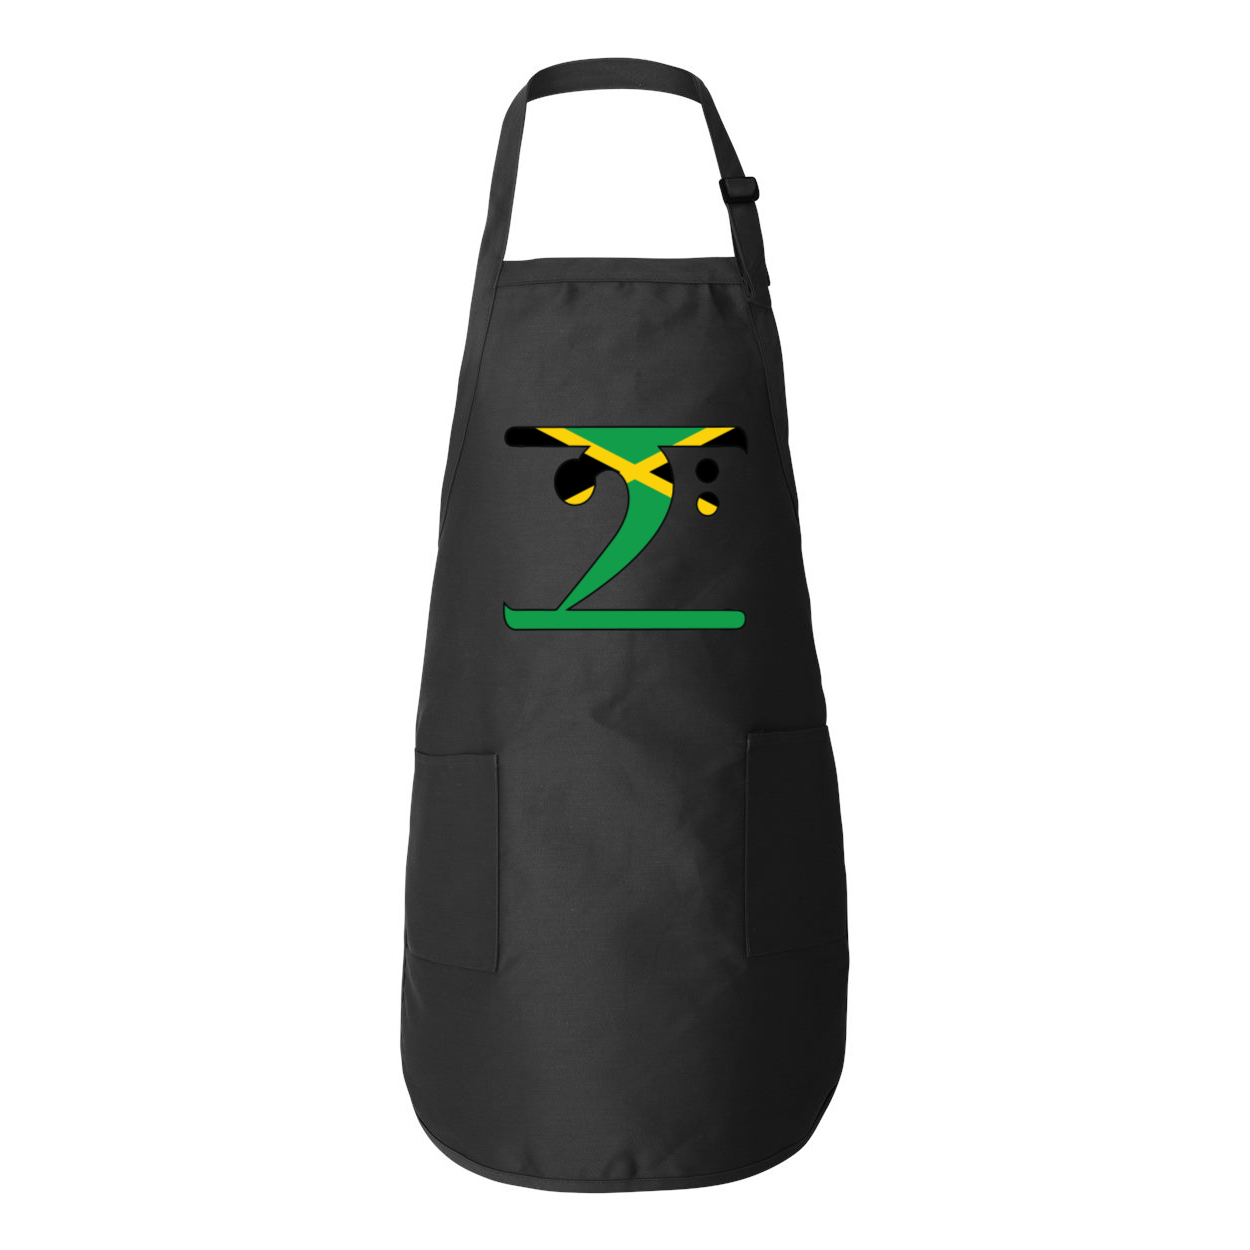 JAMAICA Full-Length Apron with Pockets - Lathon Bass Wear